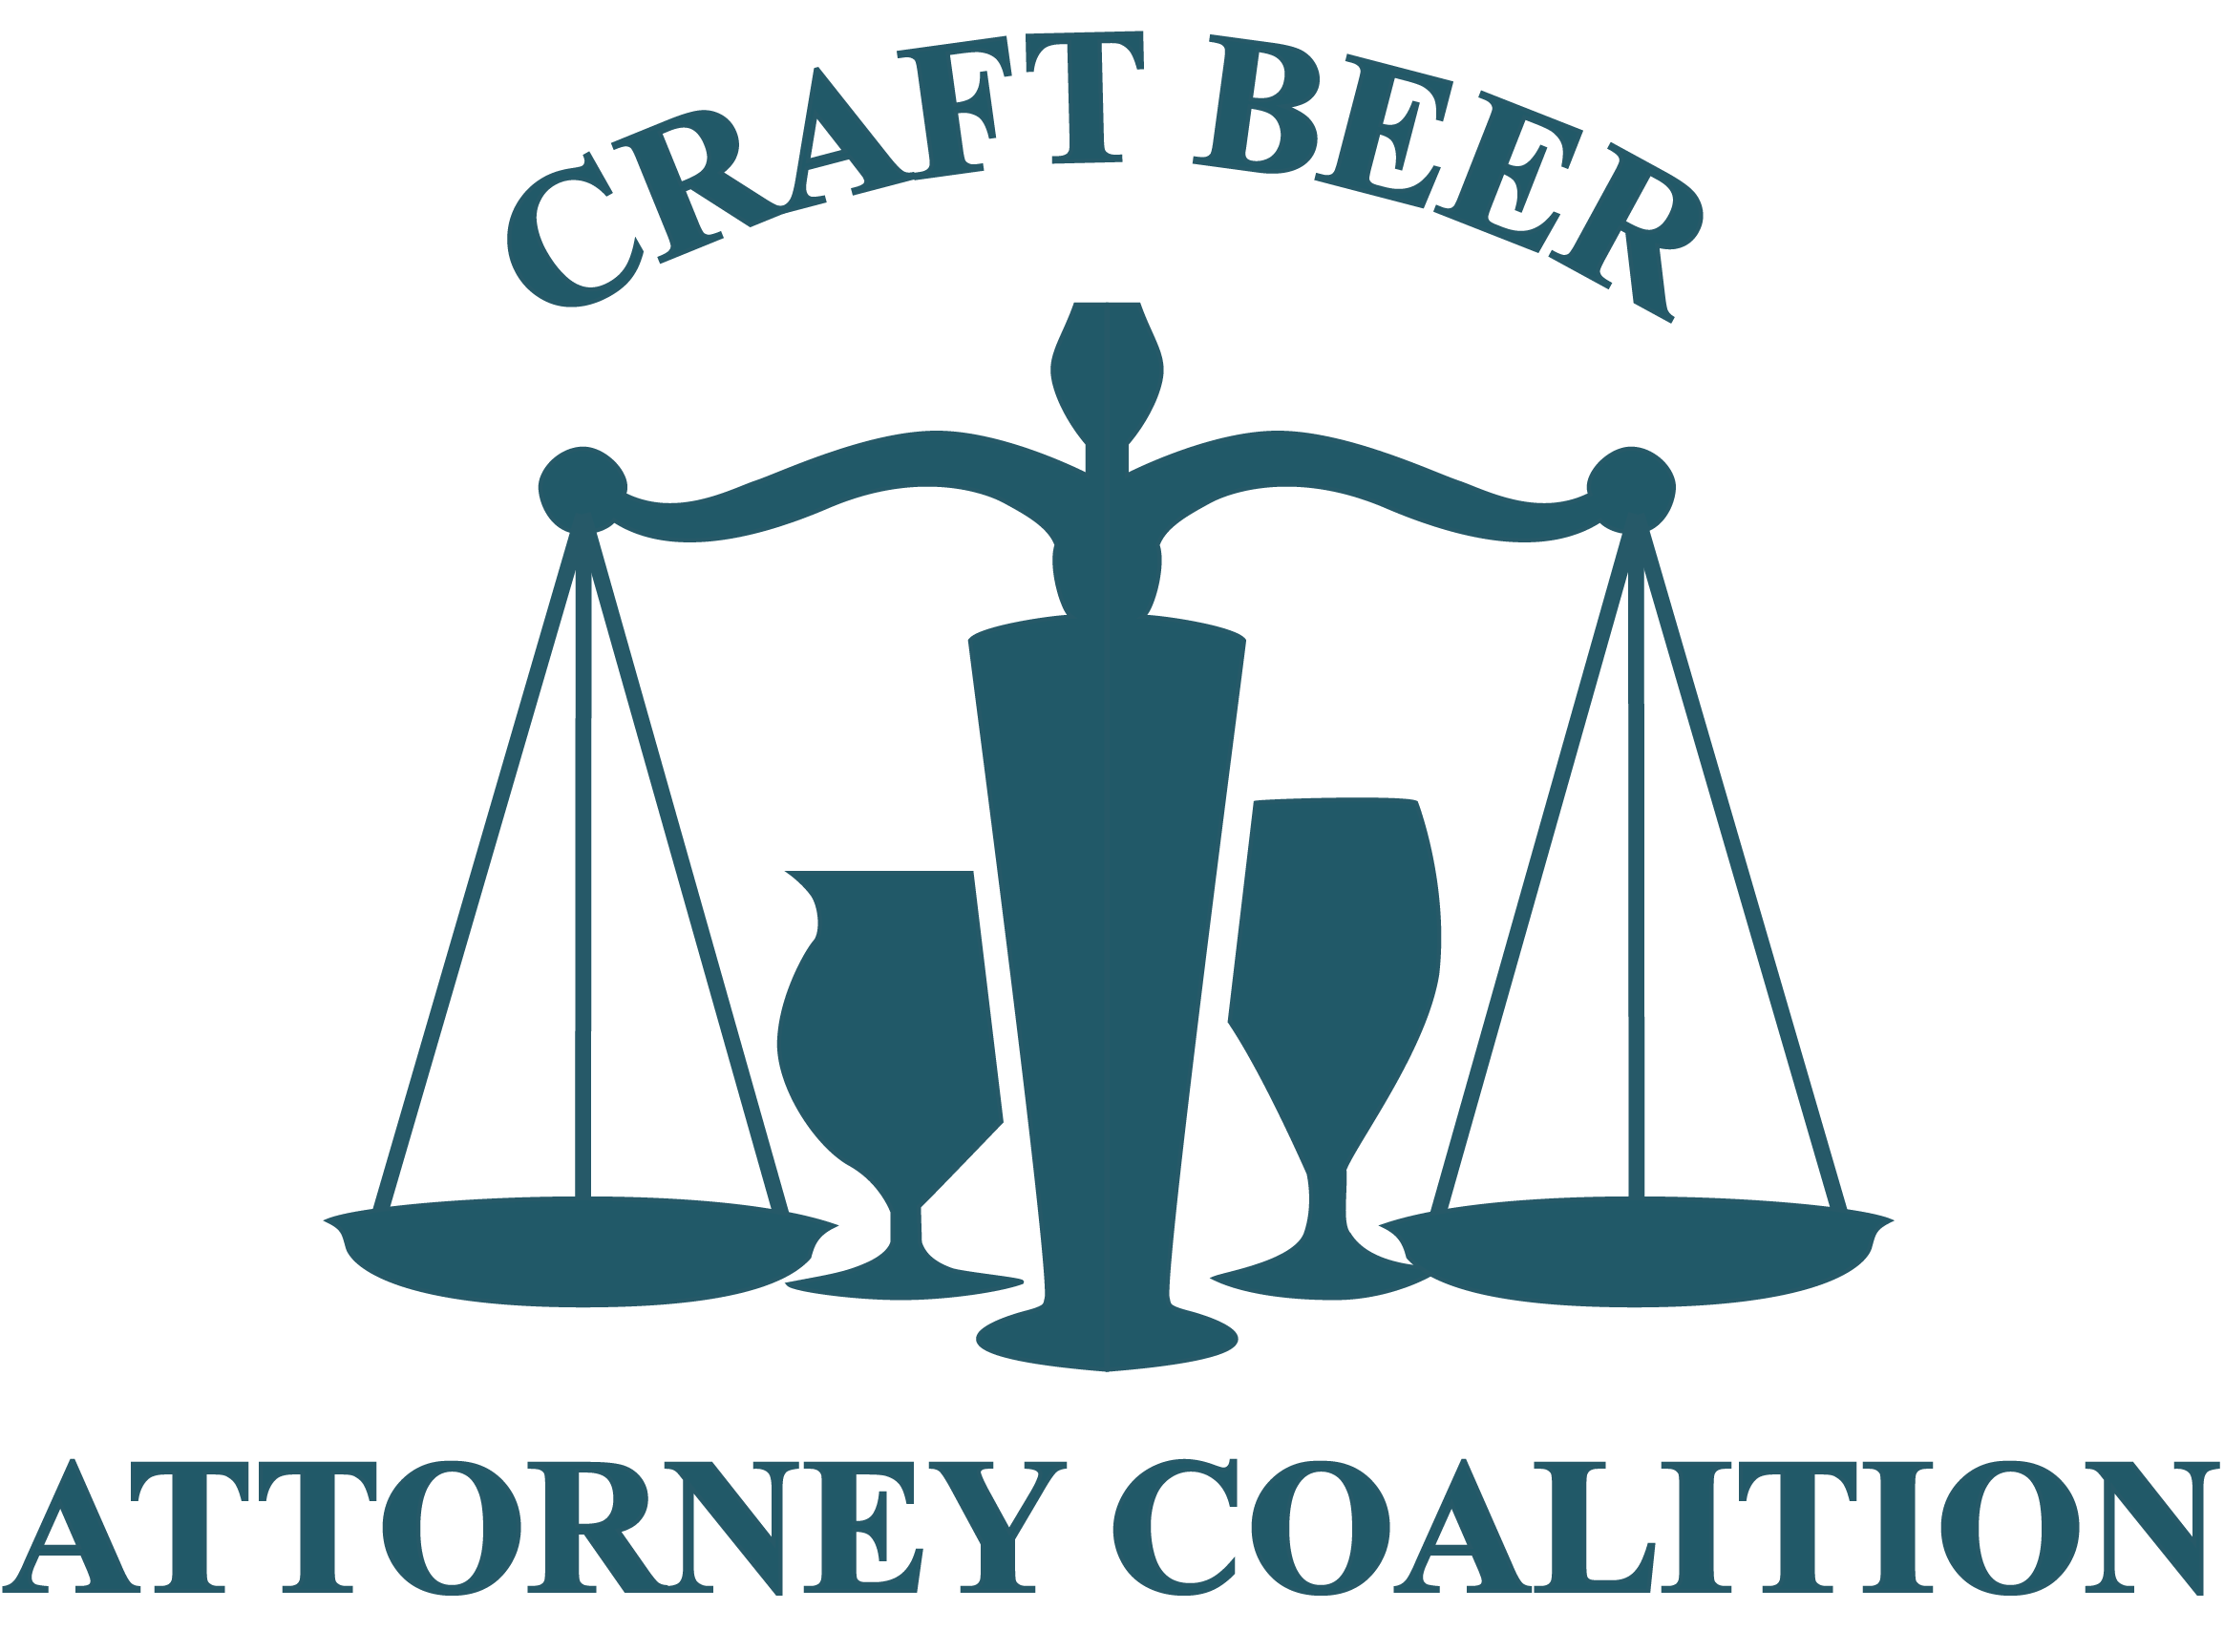 The Craft Beer Attorney Coalition